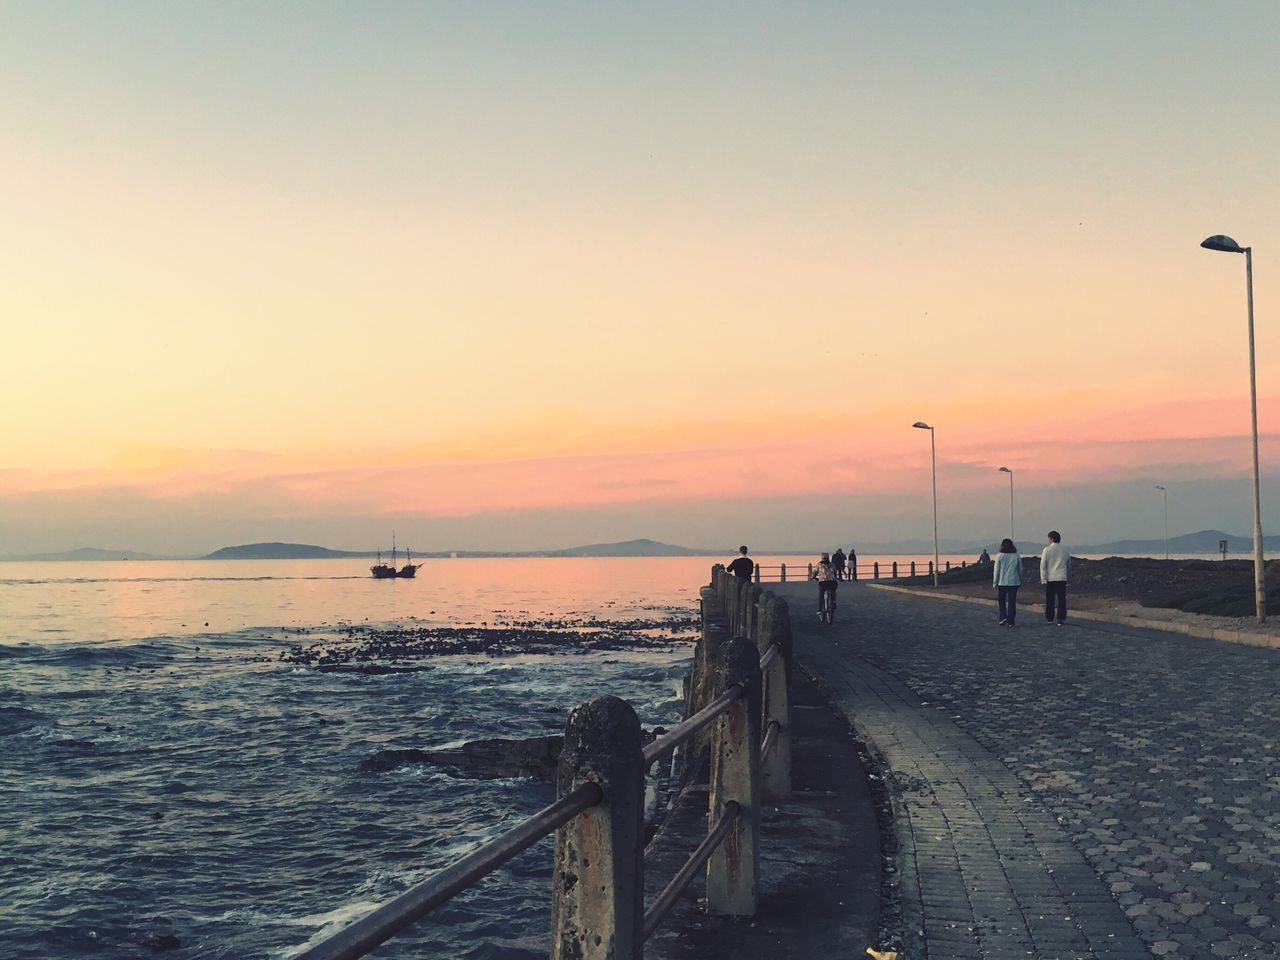 sunset, sky, sea, water, orange color, beauty in nature, scenics - nature, nature, street, copy space, street light, beach, group of people, architecture, pier, railing, footpath, real people, incidental people, outdoors, horizon over water, promenade